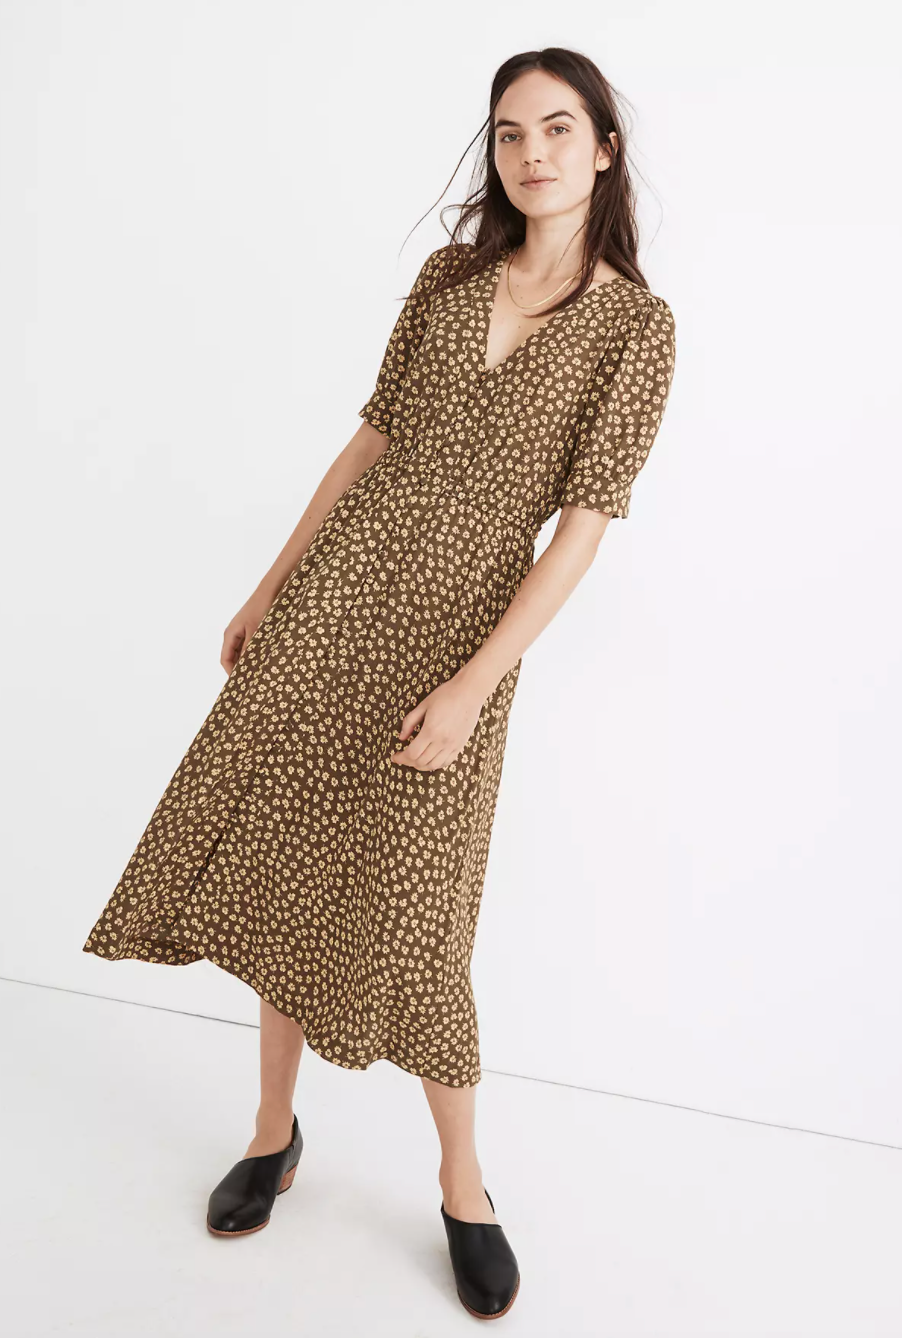 "<br><br><strong>Madewell</strong> Button-Cuff Midi Dress in Woodcut Flowers, $, available at <a href=""https://go.skimresources.com/?id=30283X879131&url=https%3A%2F%2Fwww.madewell.com%2Fbutton-cuff-midi-dress-in-woodcut-flowers-MB203.html%3Fdwvar_MB203_color%3DPP0162%26cgid%3Dsale-40-off-fall-favorites%23prefn1%3DisBackroom%26prefv1%3Dfalse%26srule%3DBest-Sellers%26start%3D20%26sz%3D36"" rel=""nofollow noopener"" target=""_blank"" data-ylk=""slk:Madewell"" class=""link rapid-noclick-resp"">Madewell</a>"